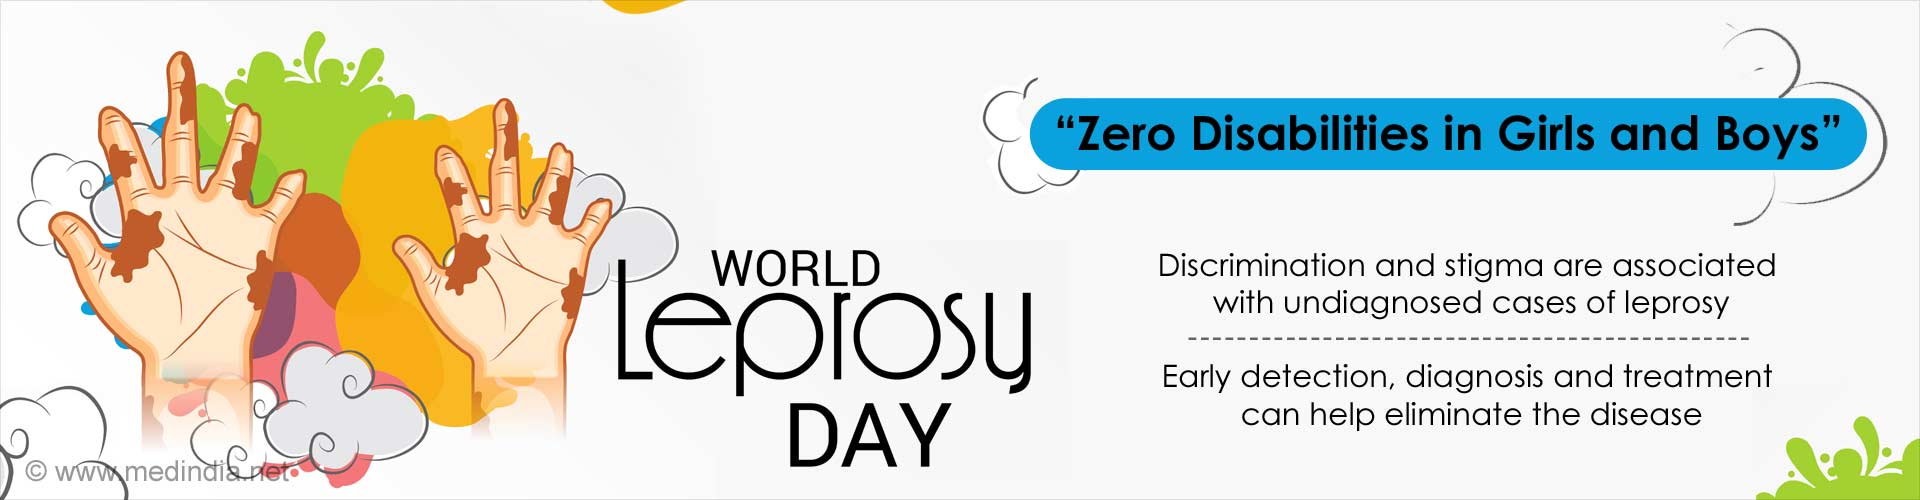 World Leprosy Day: Zero Disabilities in Girls and Boys